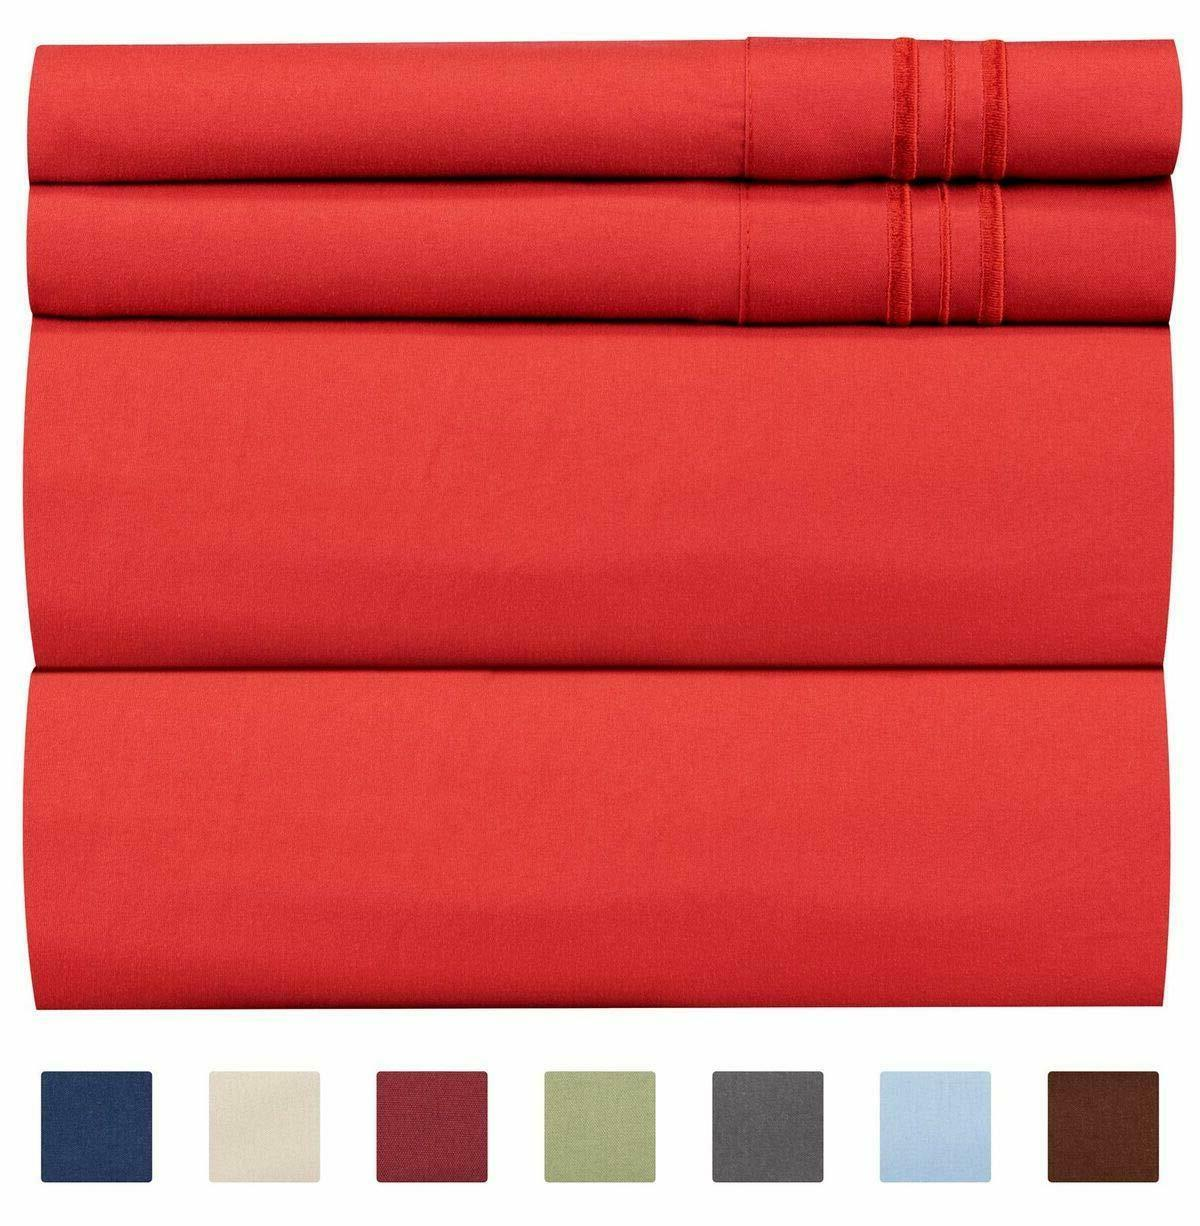 Queen Size Sheet Set Wrinkle Free Luxury Bed Sheets 4